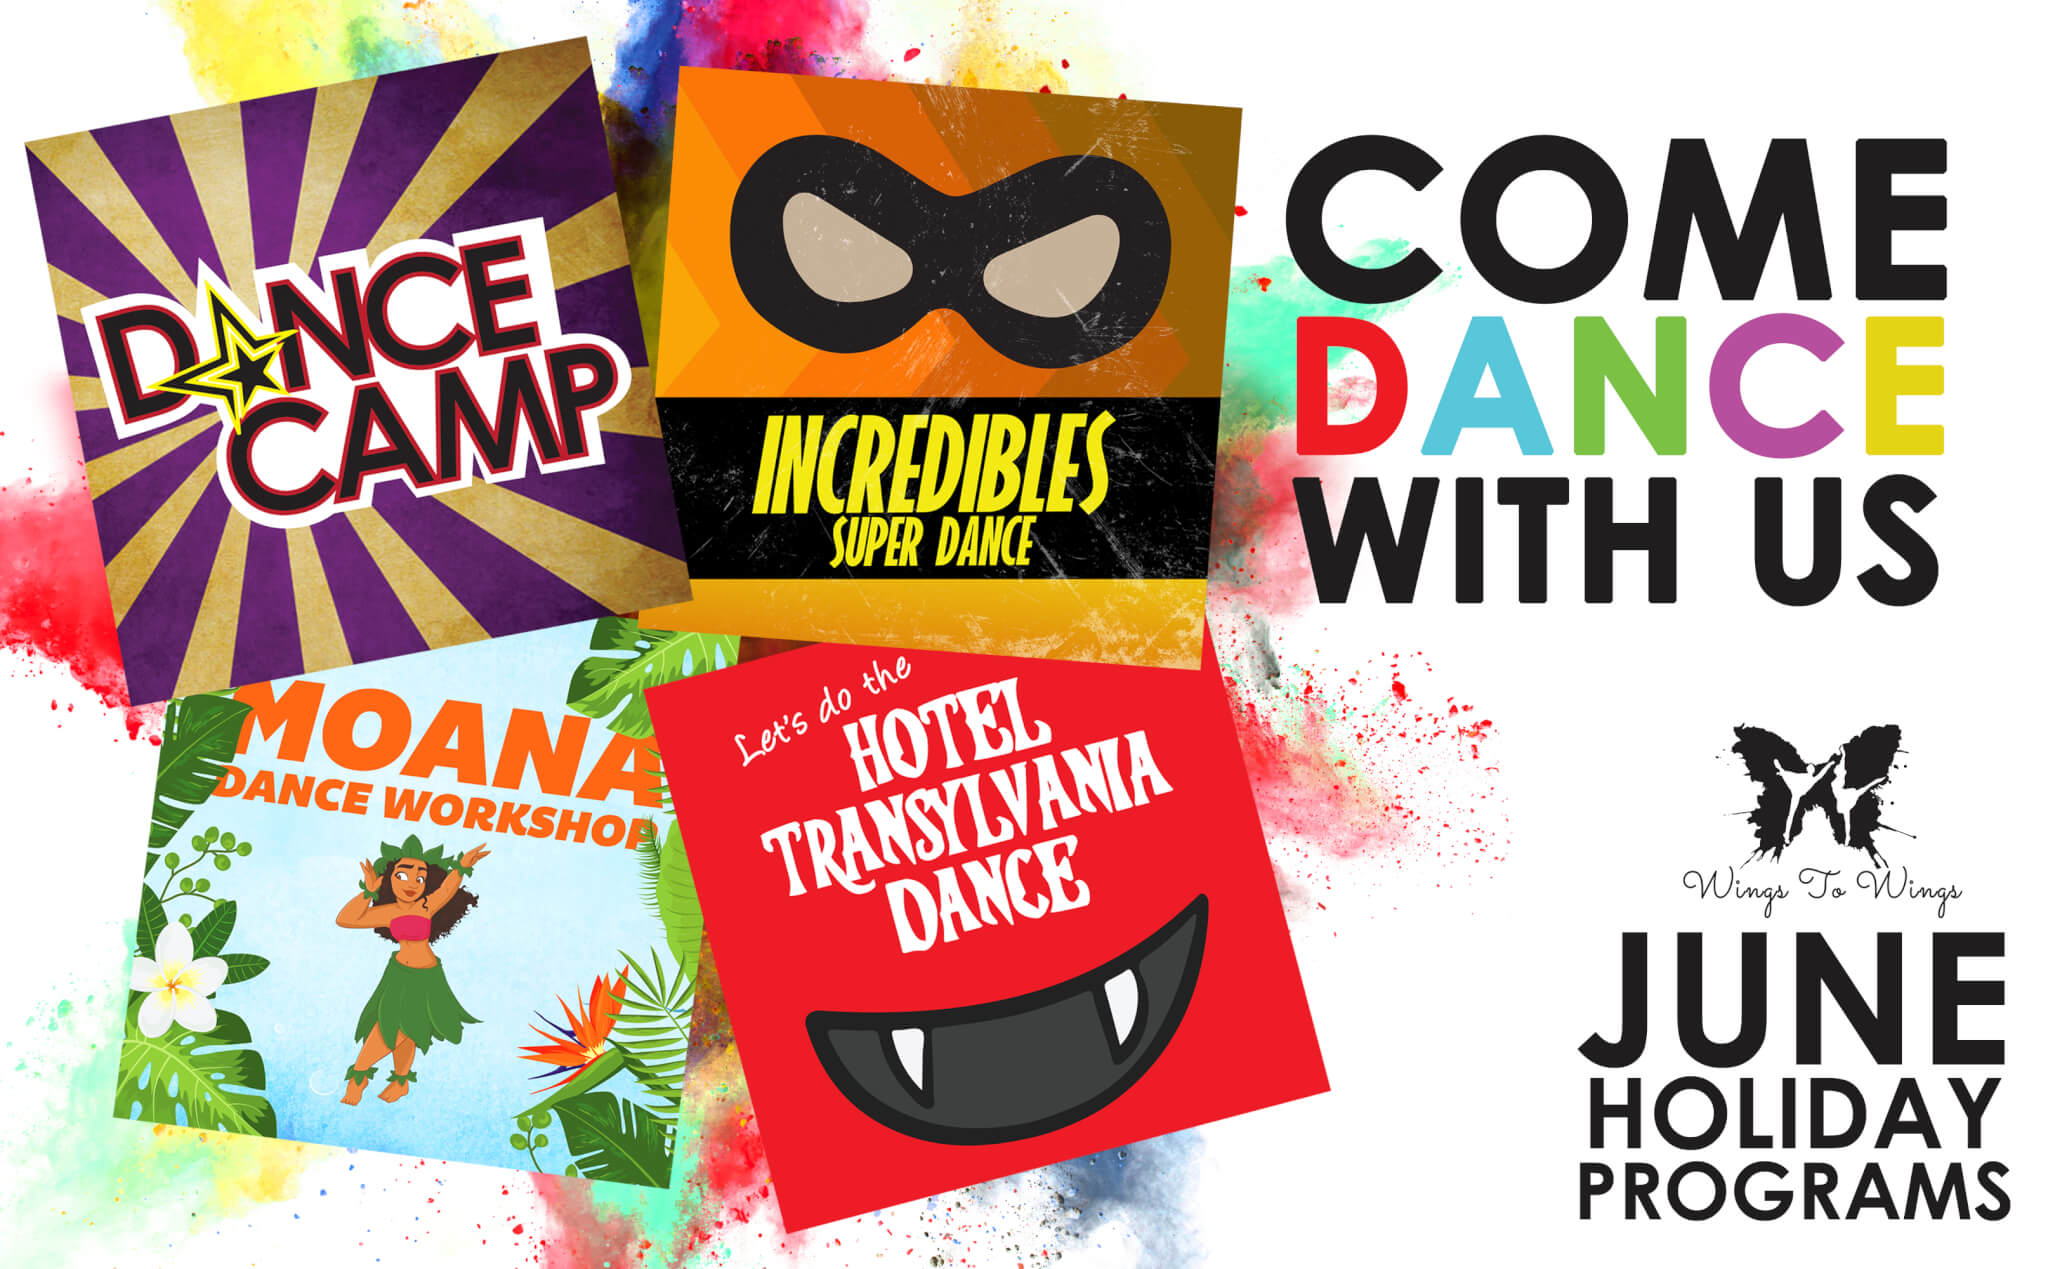 Wings to Wings June Holidays 2018 Dance Camps and Workshops